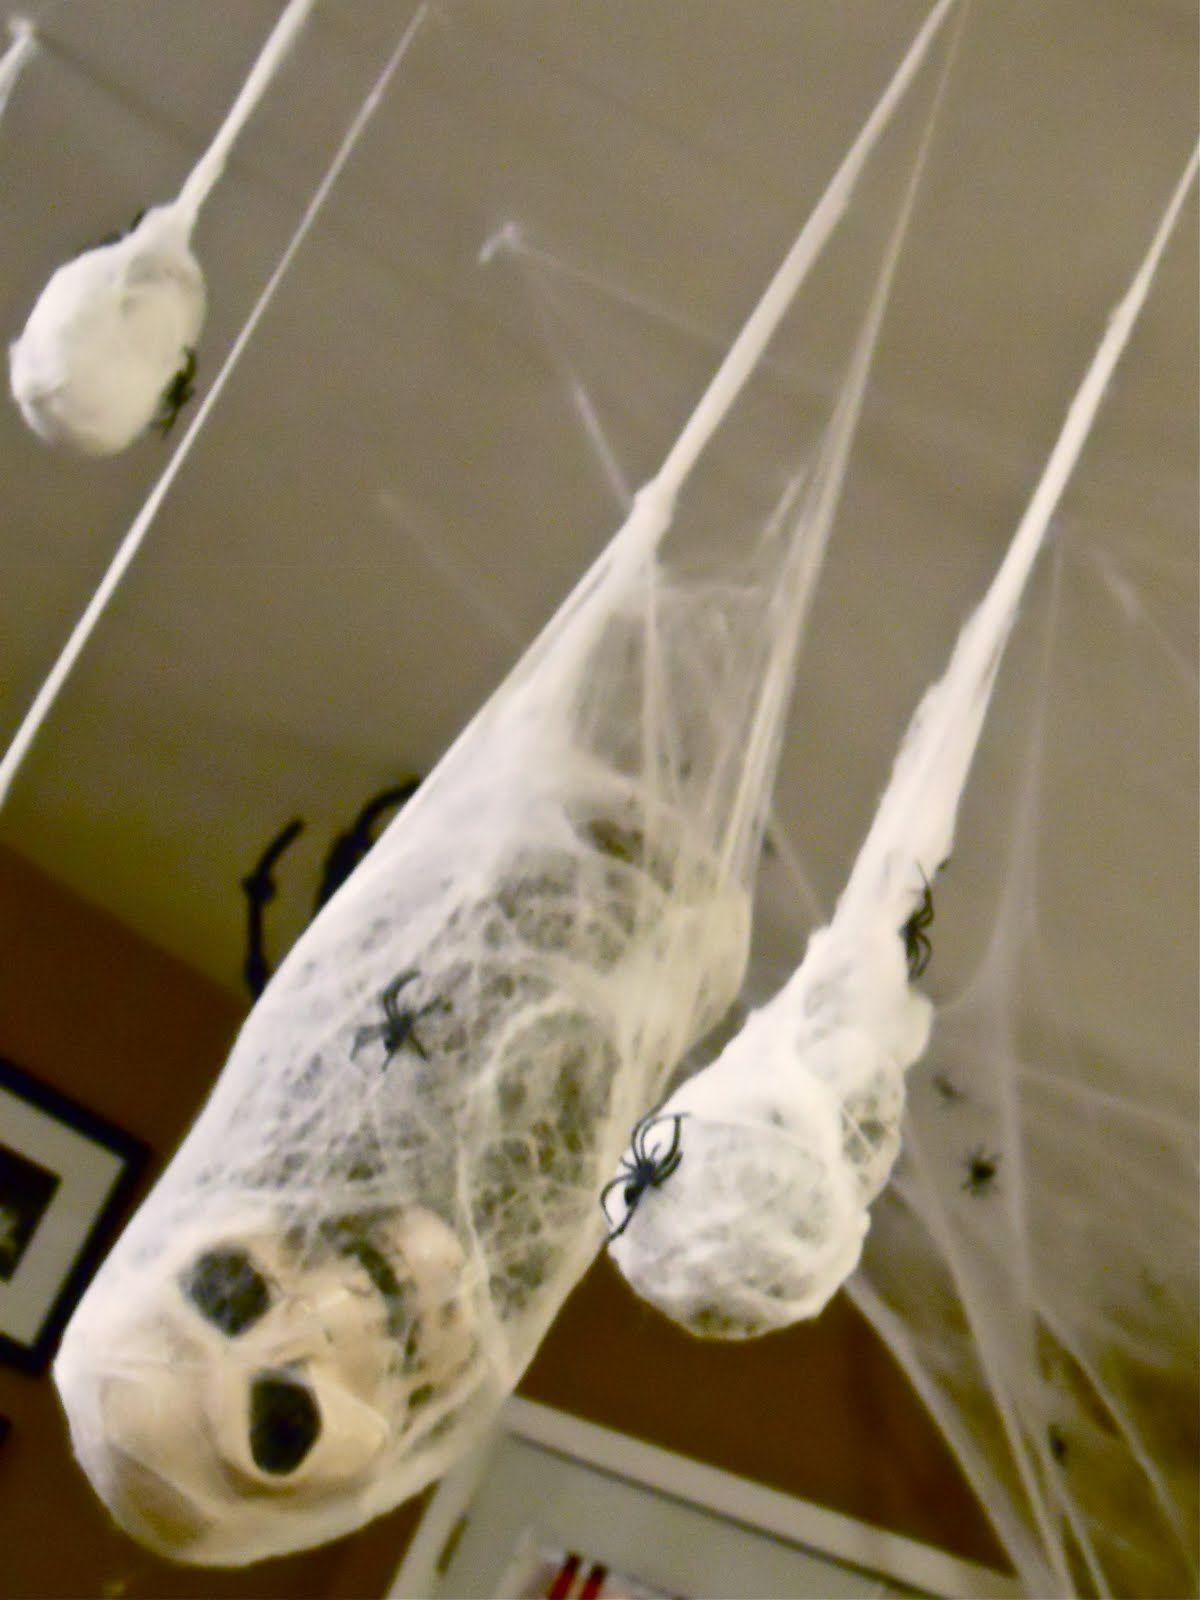 home decorating trends homedit - Diy Scary Halloween Decorations Outdoor